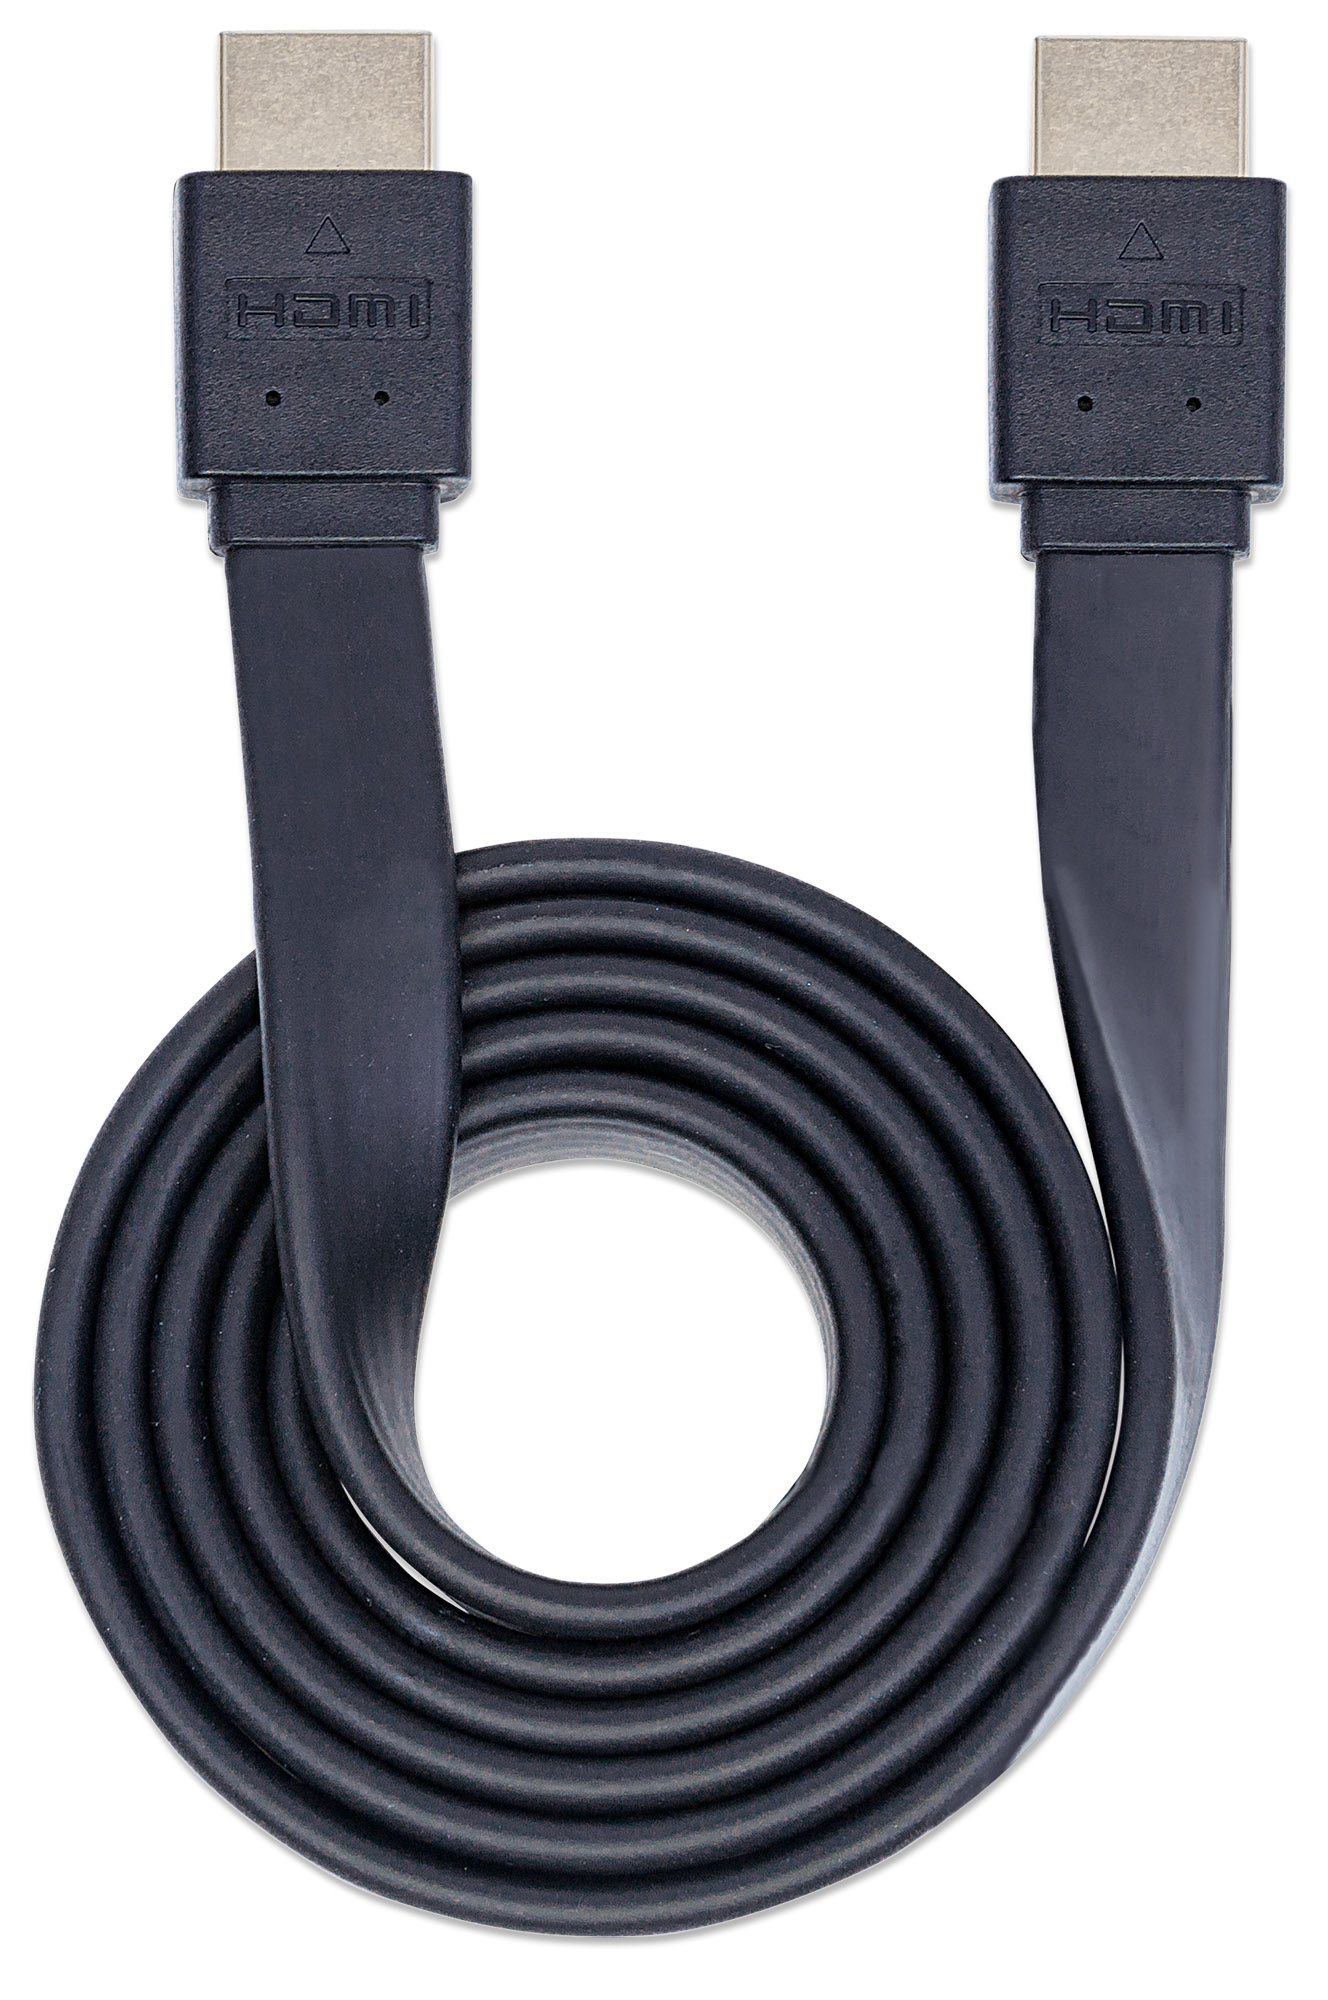 Flat High Speed HDMI Cable with Ethernet